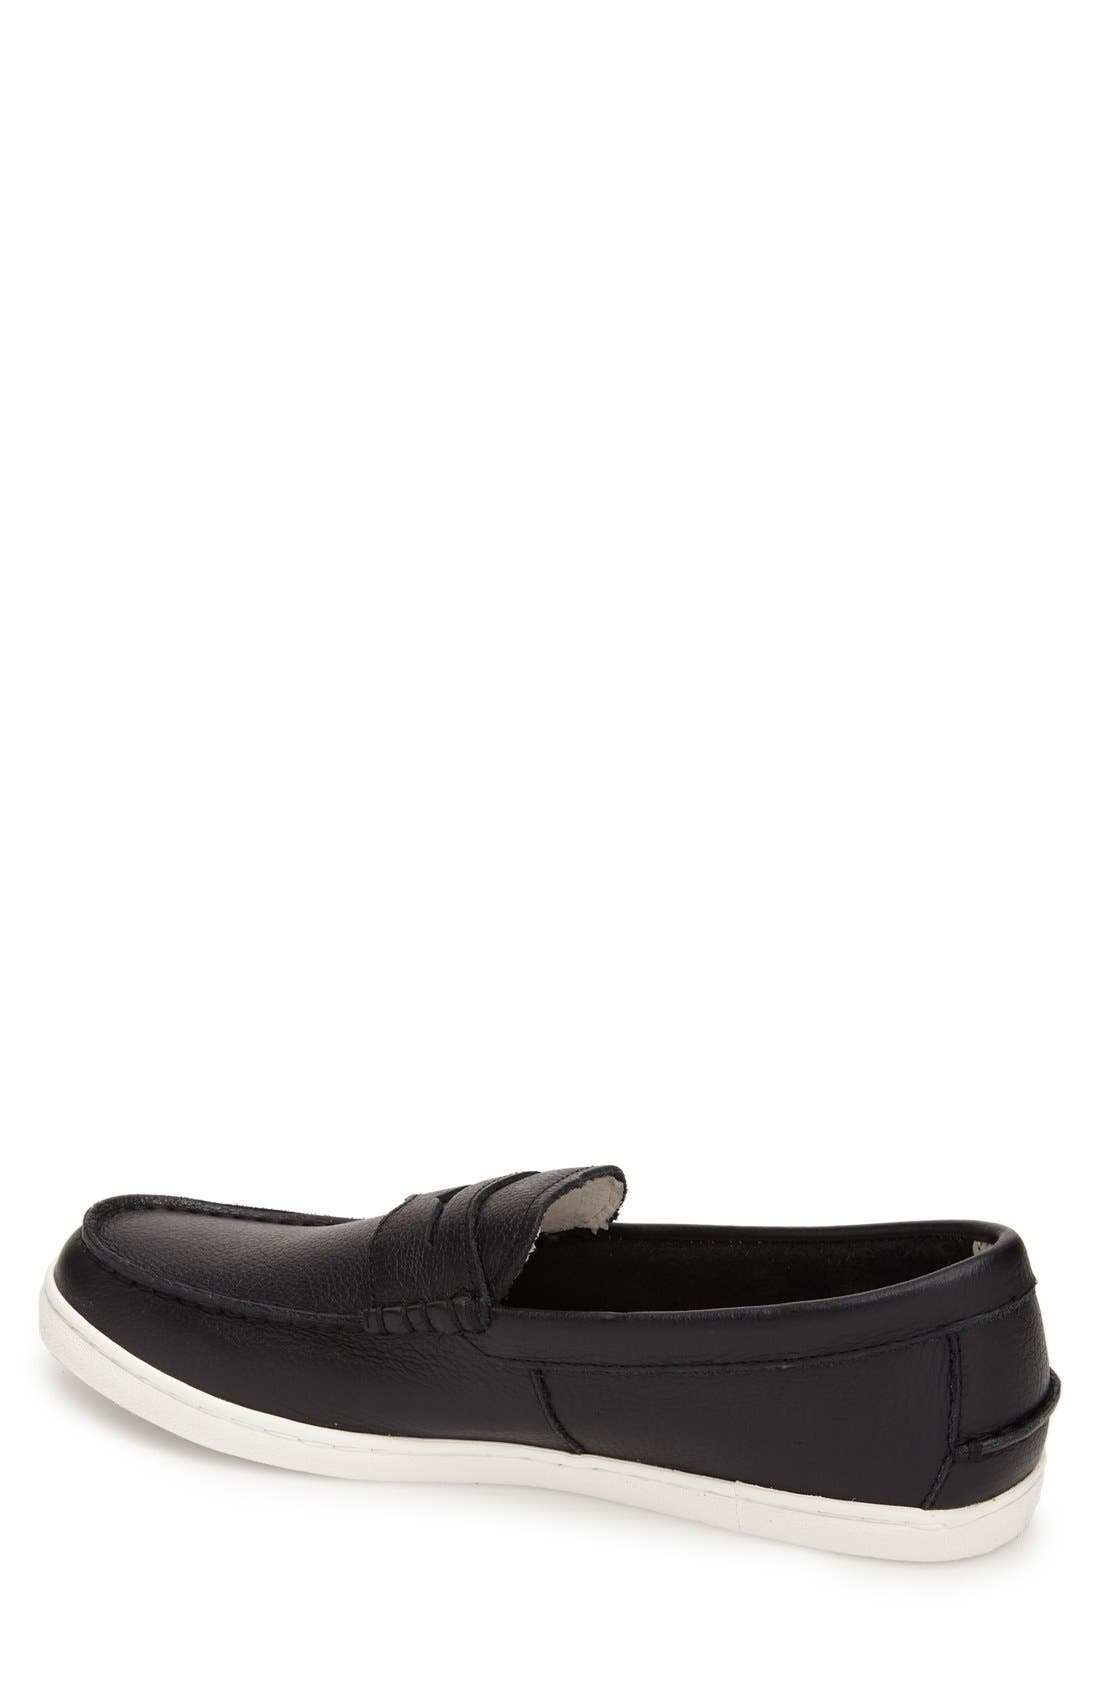 'Pinch' Penny Loafer,                             Alternate thumbnail 6, color,                             Black Leather/ White